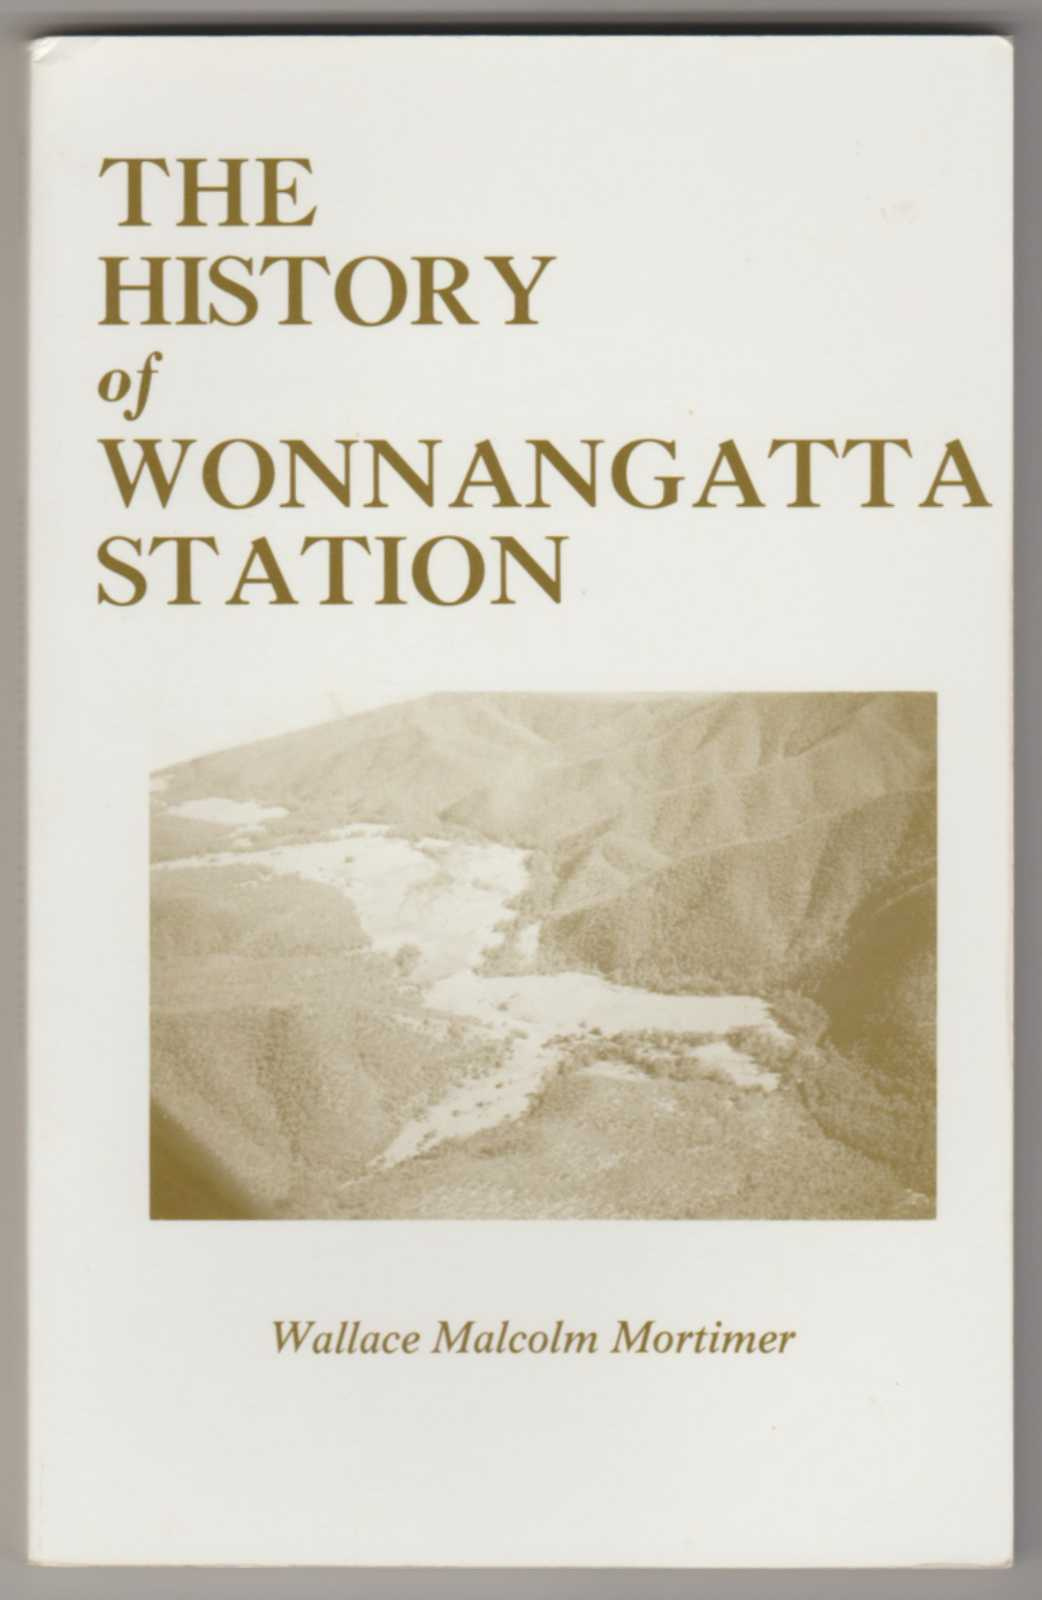 Image for THE HISTORY OF WONNANGATTA STATION